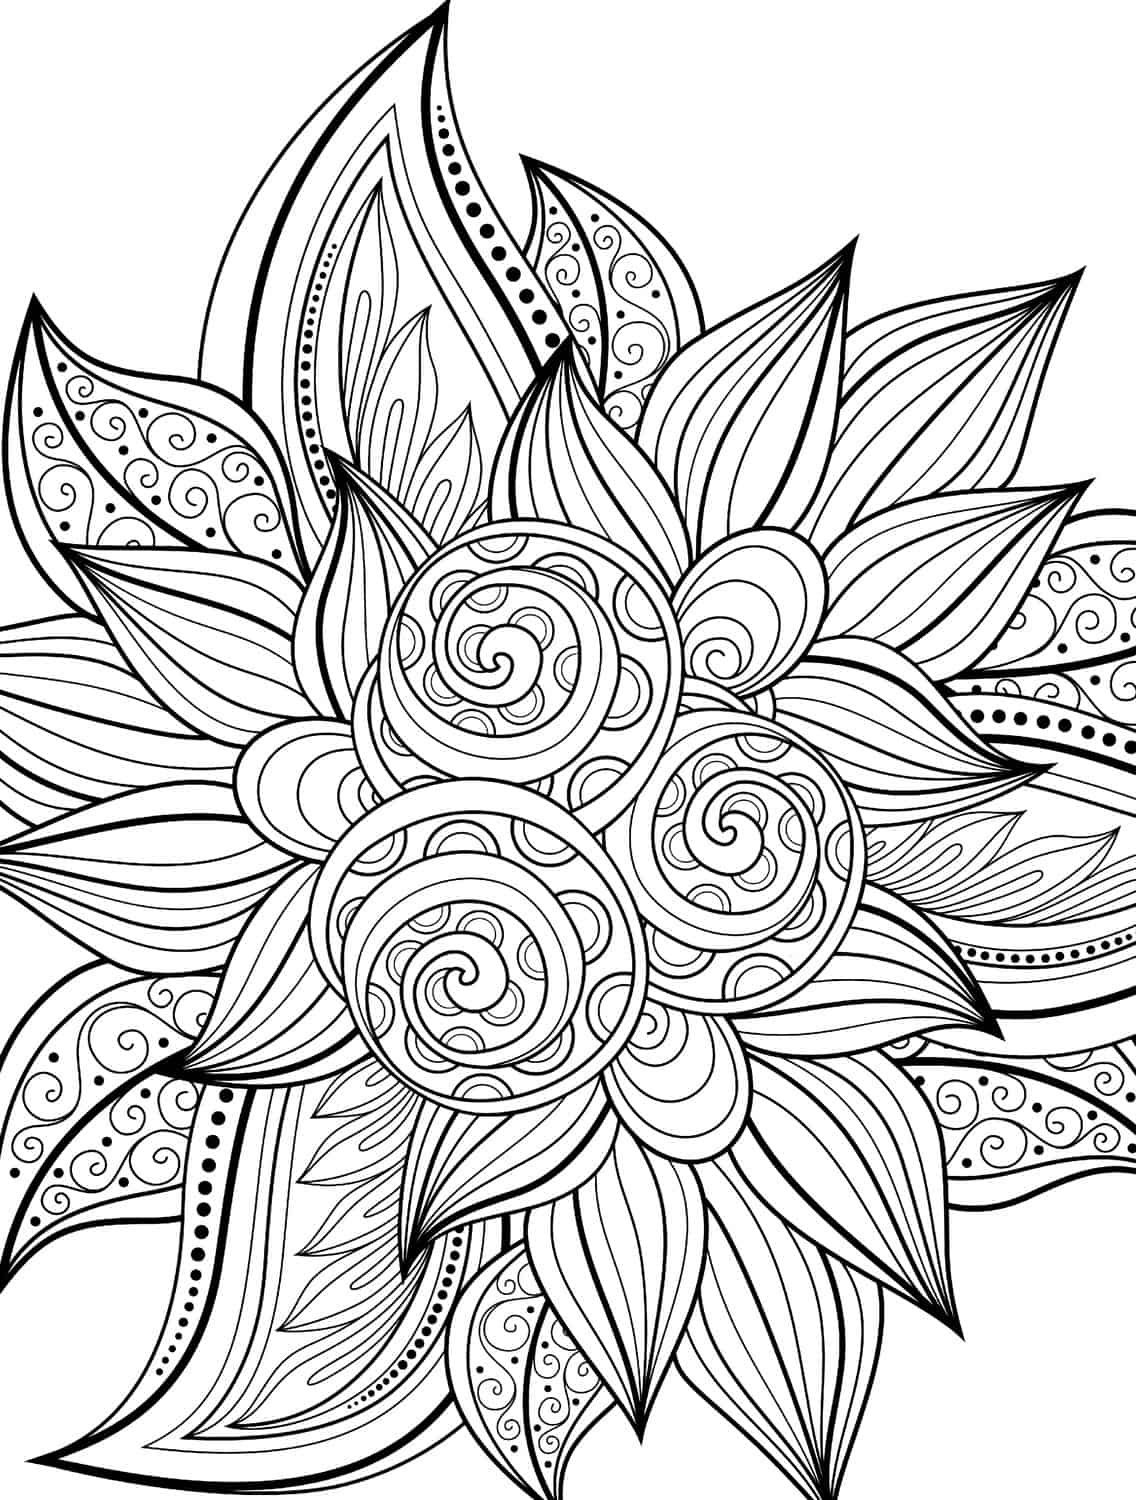 coloring pages for adults printable 20 gorgeous free printable adult coloring pages page 3 coloring pages adults printable for